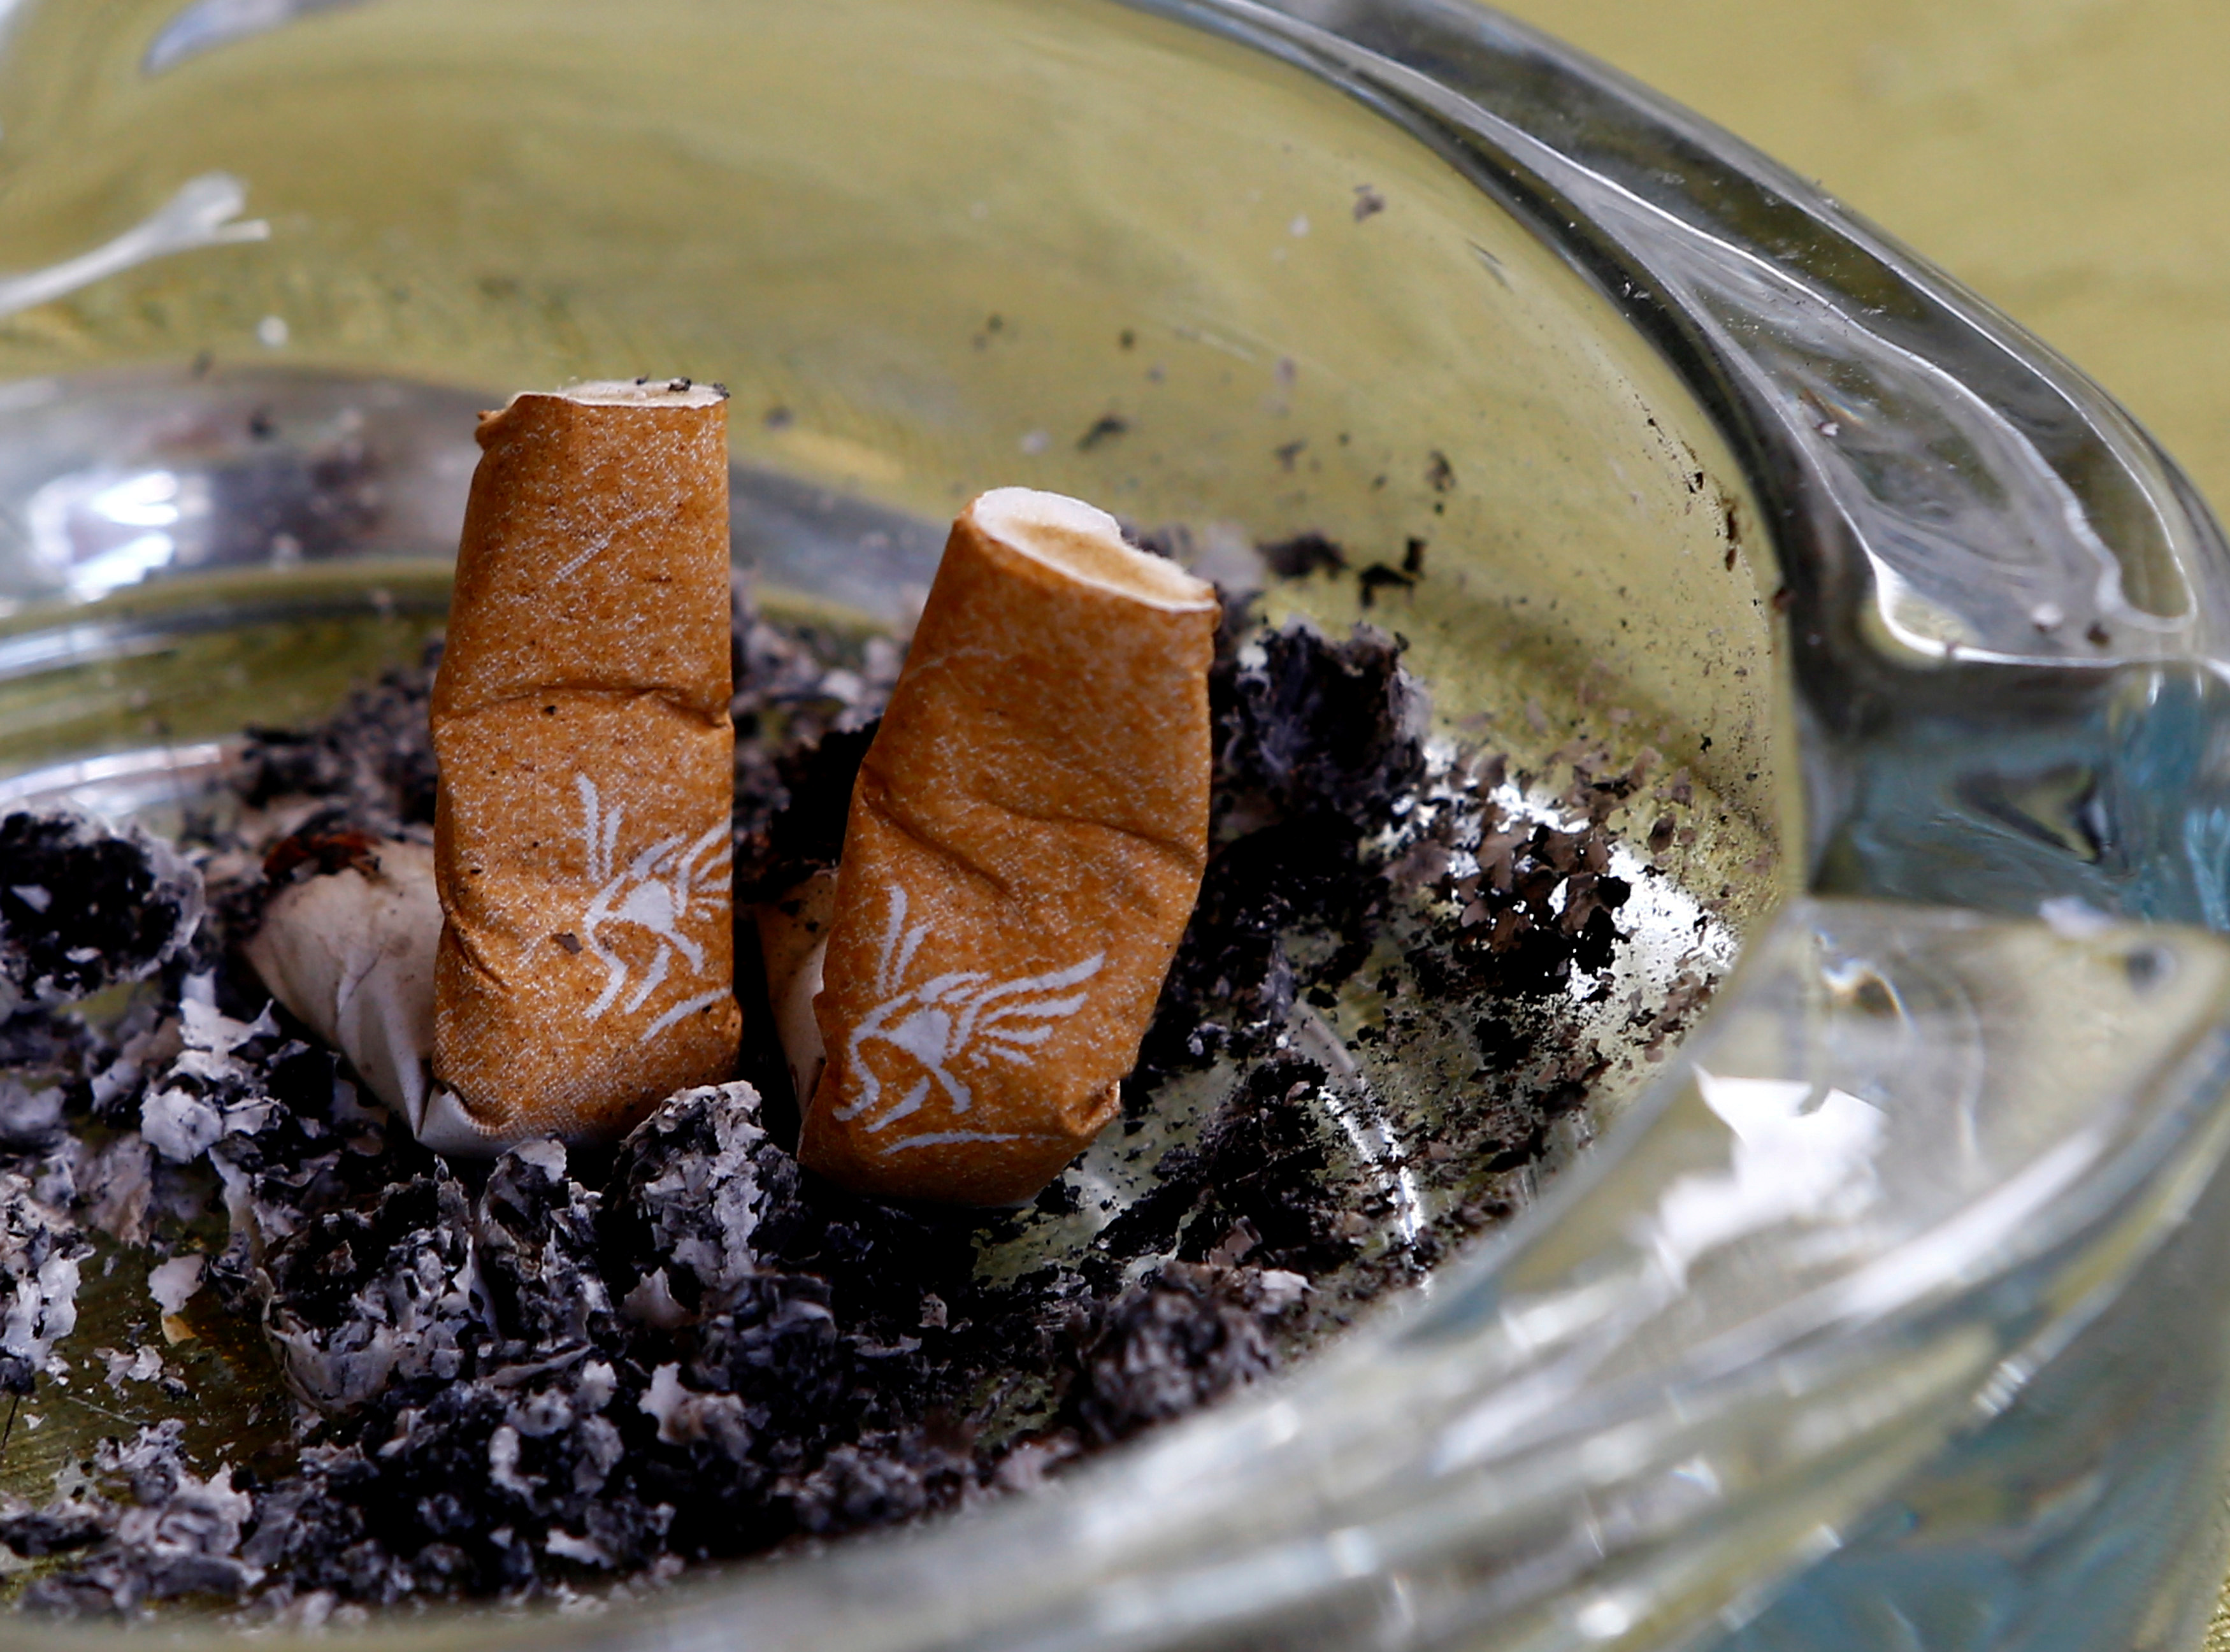 An illustration picture shows discarded Gauloises cigarette butts in an ashtray in a coffee house in Vienna, Austria, May 12, 2017.  REUTERS/Leonhard Foeger/Illustration